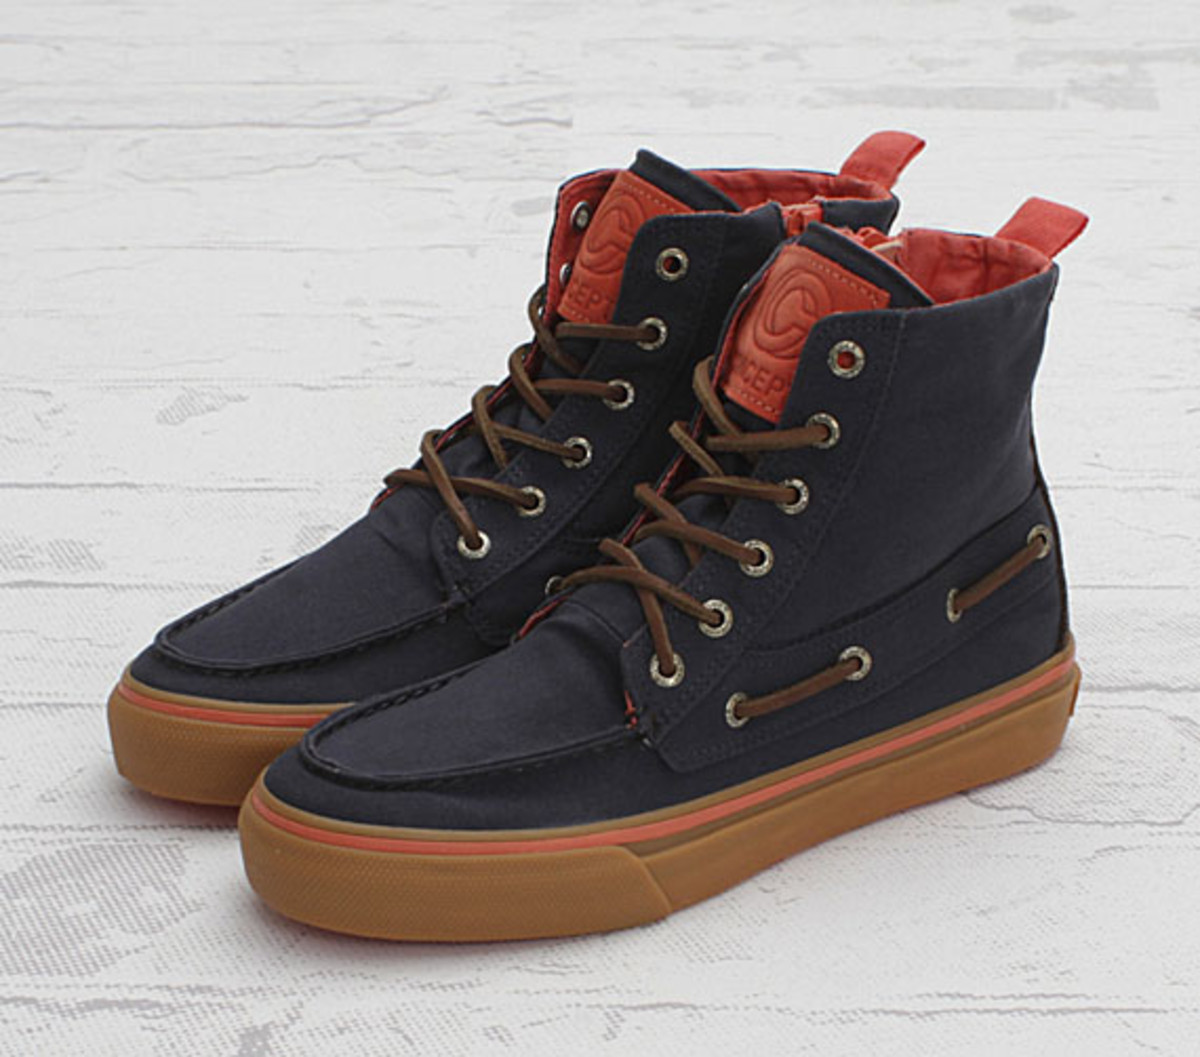 concepts-sperry-top-sider-bahama-boot-fall-2012-13